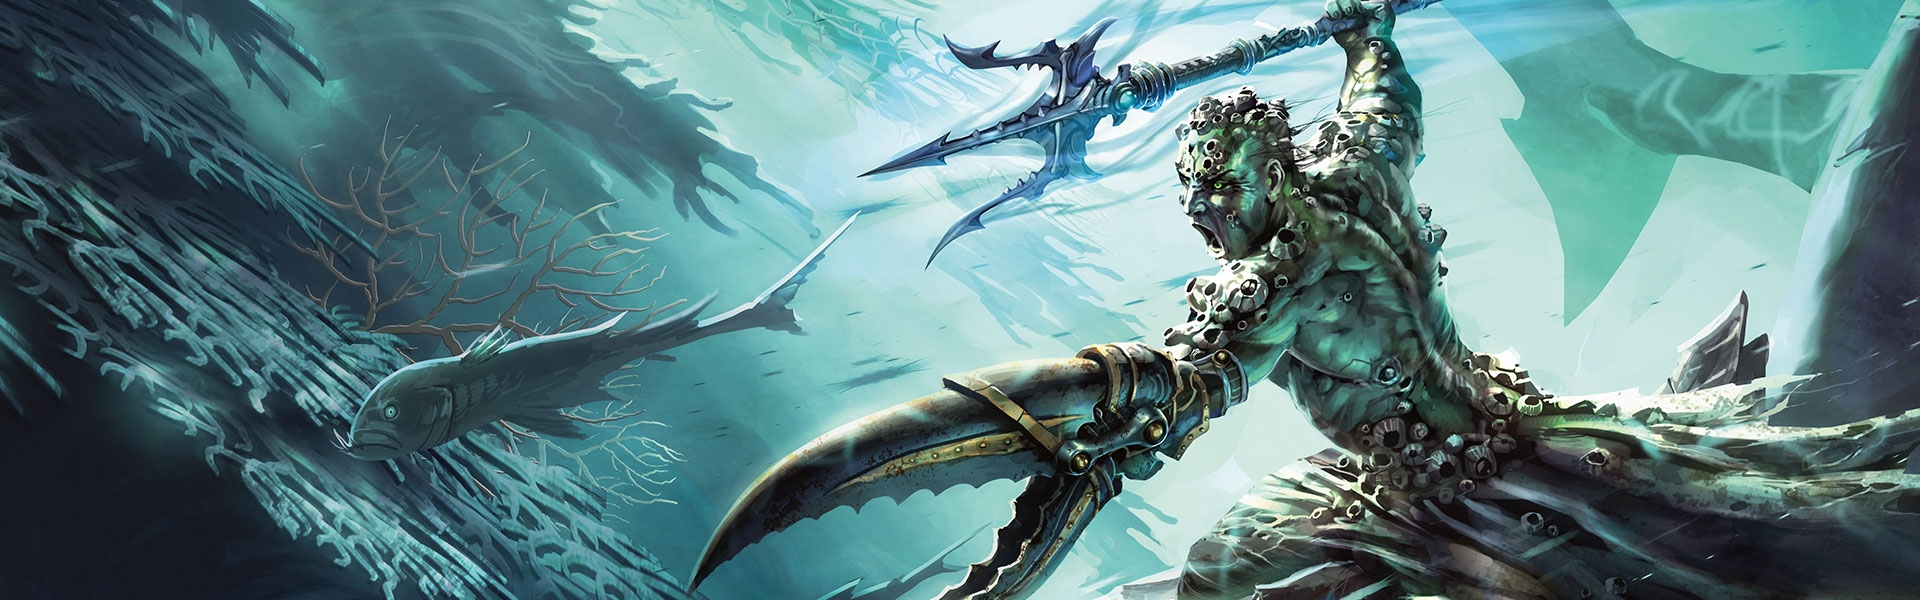 Monsters Water Elemental Dungeons Amp Dragons